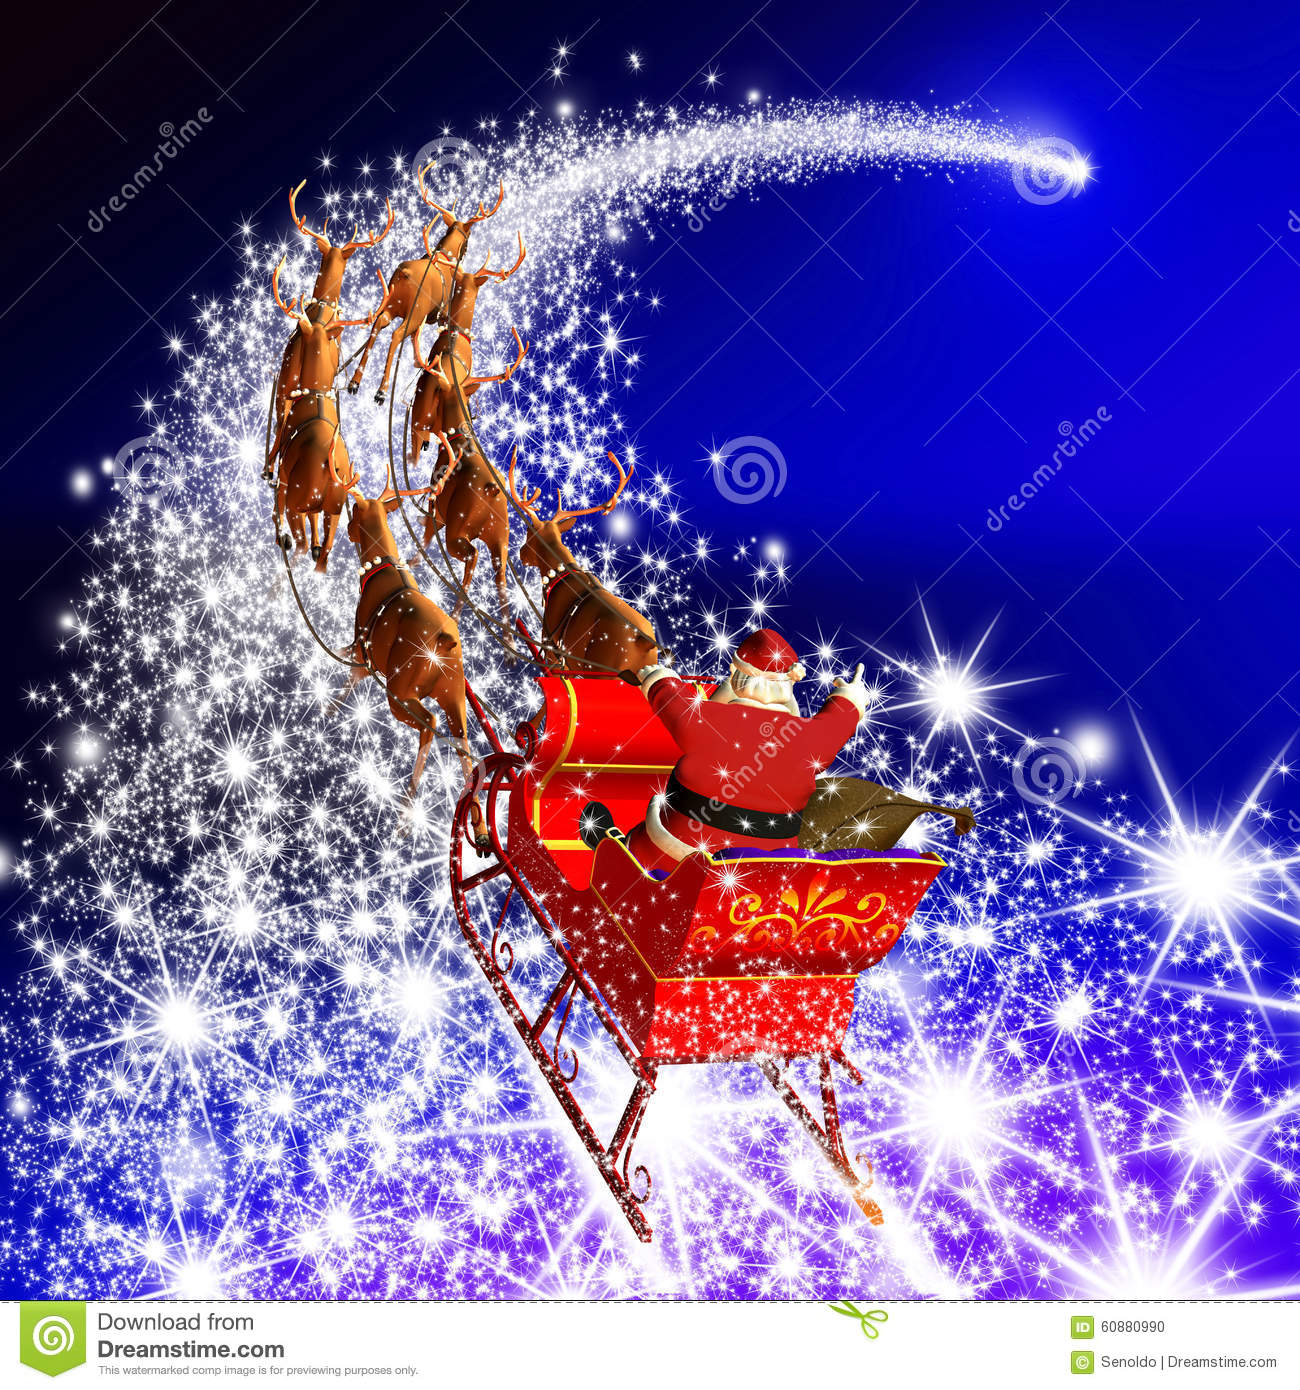 Santa Claus With Reindeer Sleigh Flying On A Falling Star ...